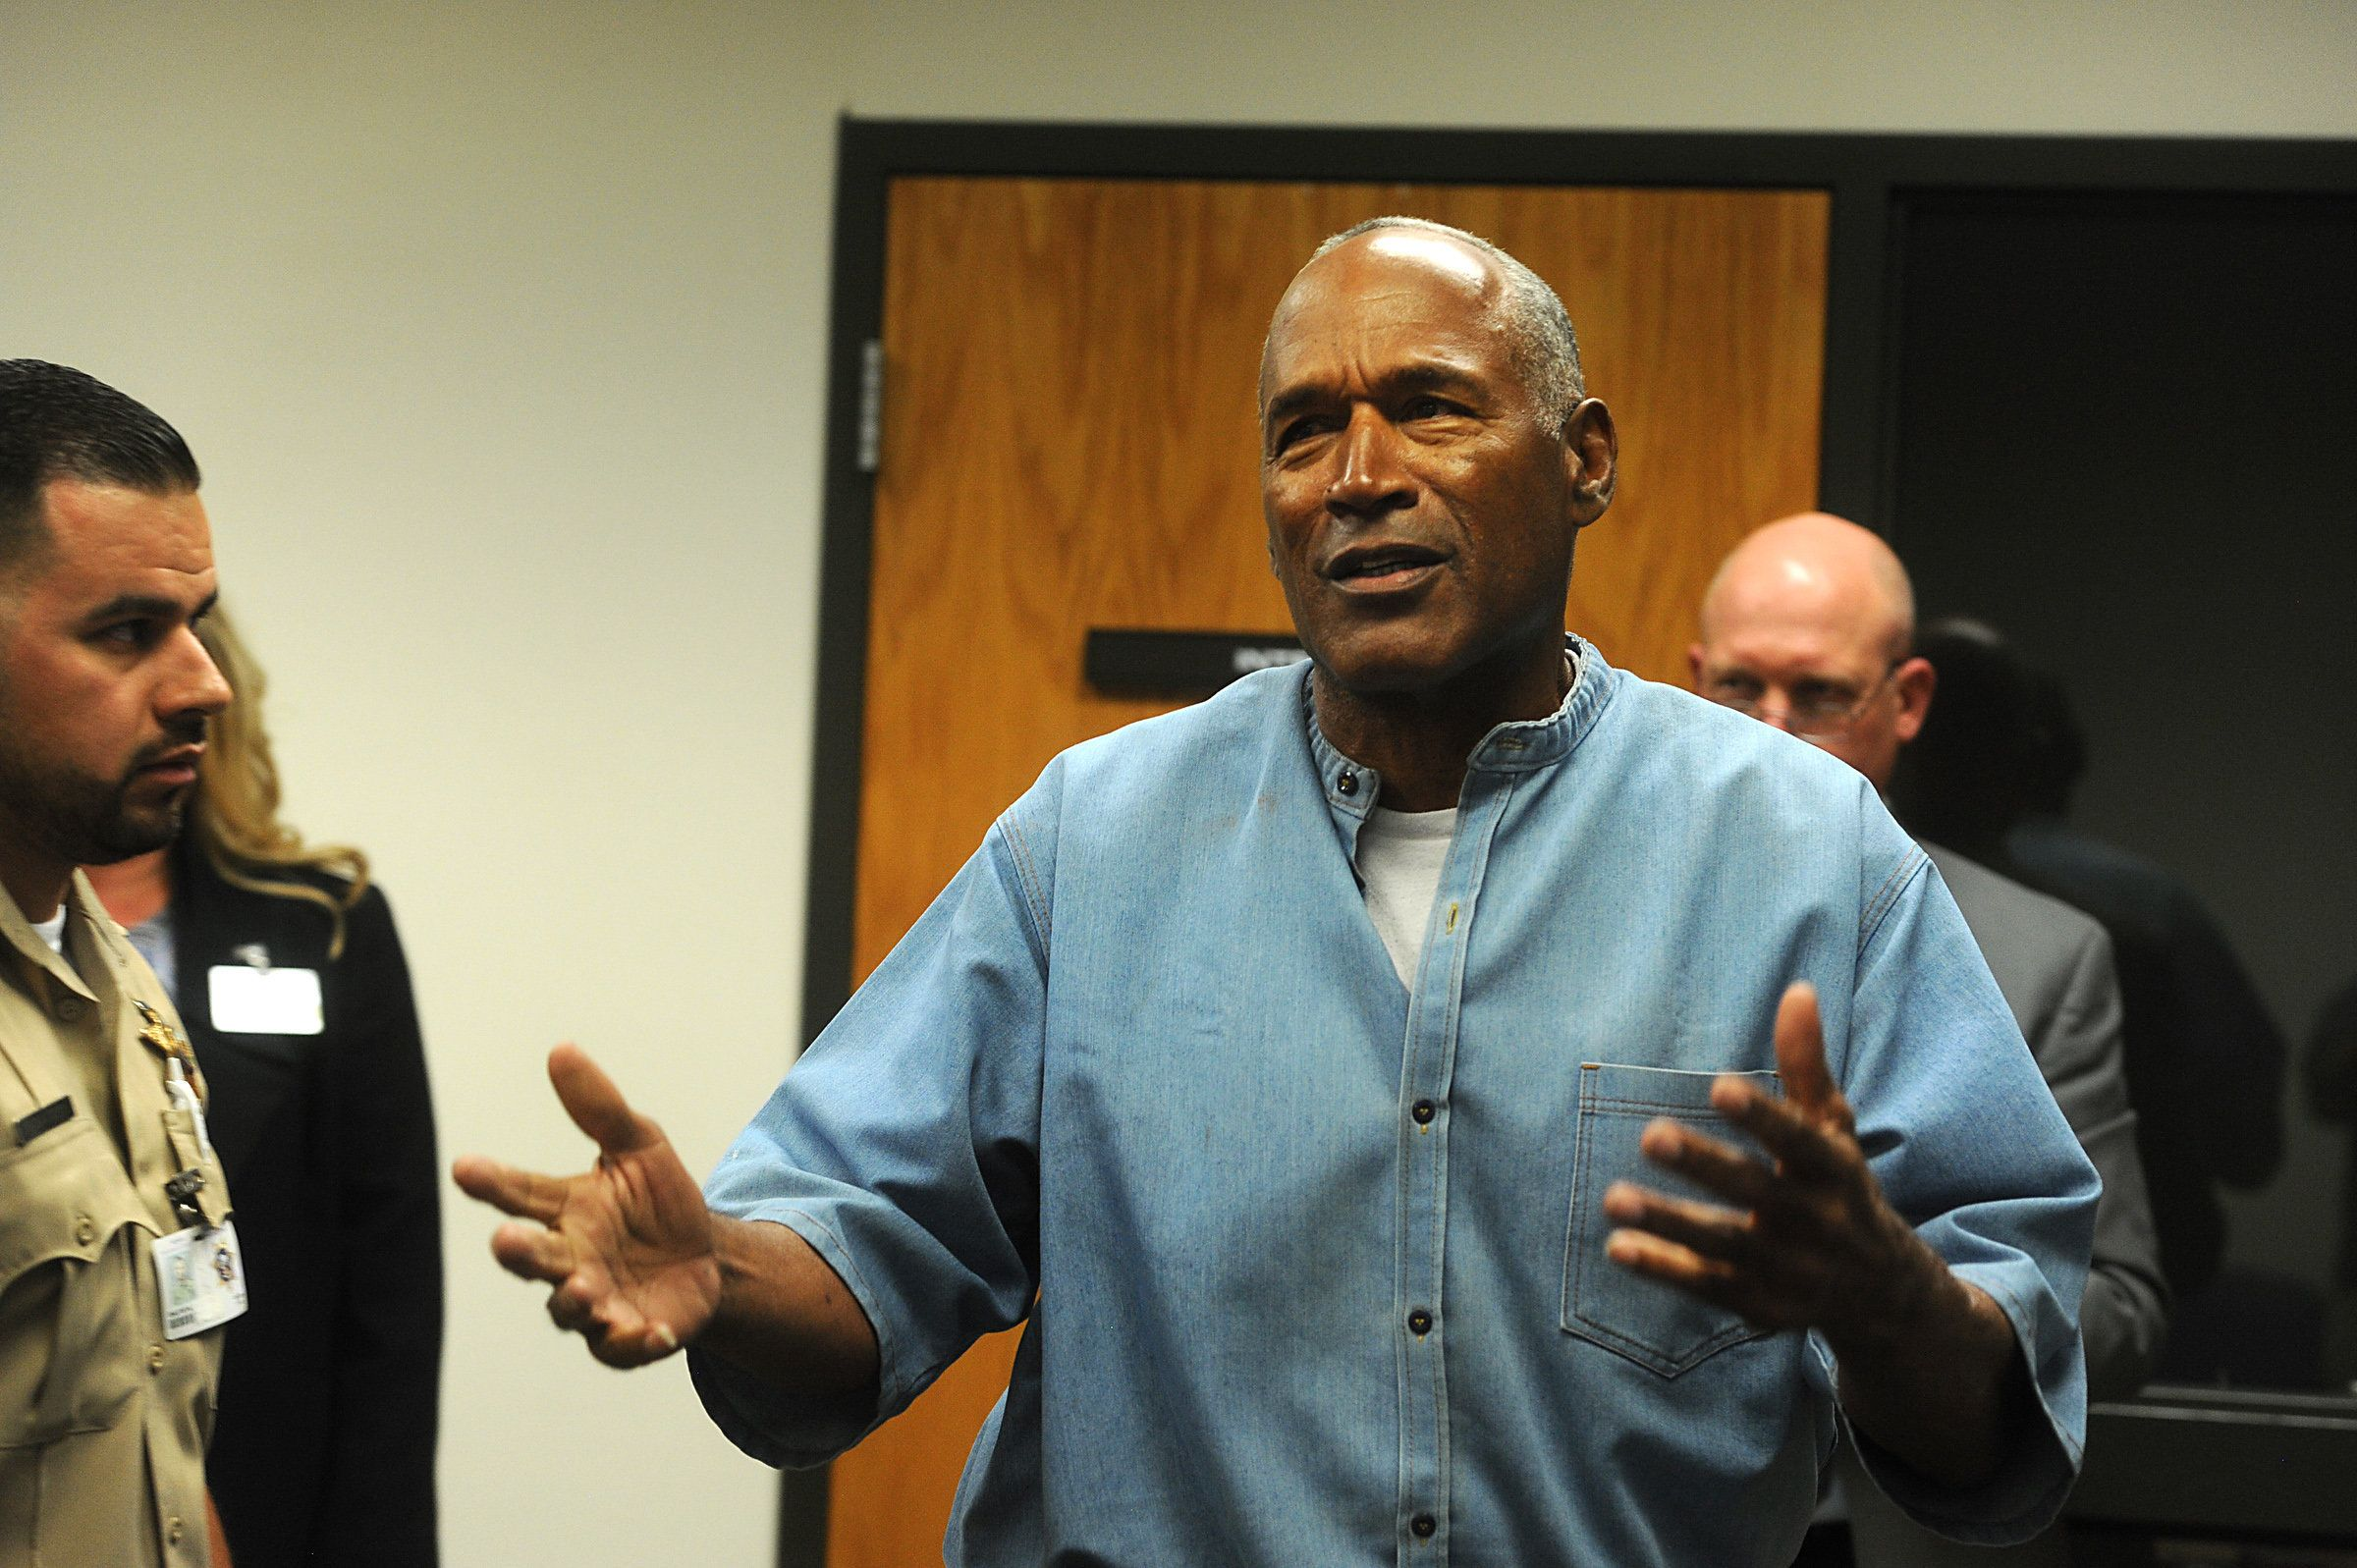 Where is OJ Simpson going after prison? 'None of your business'